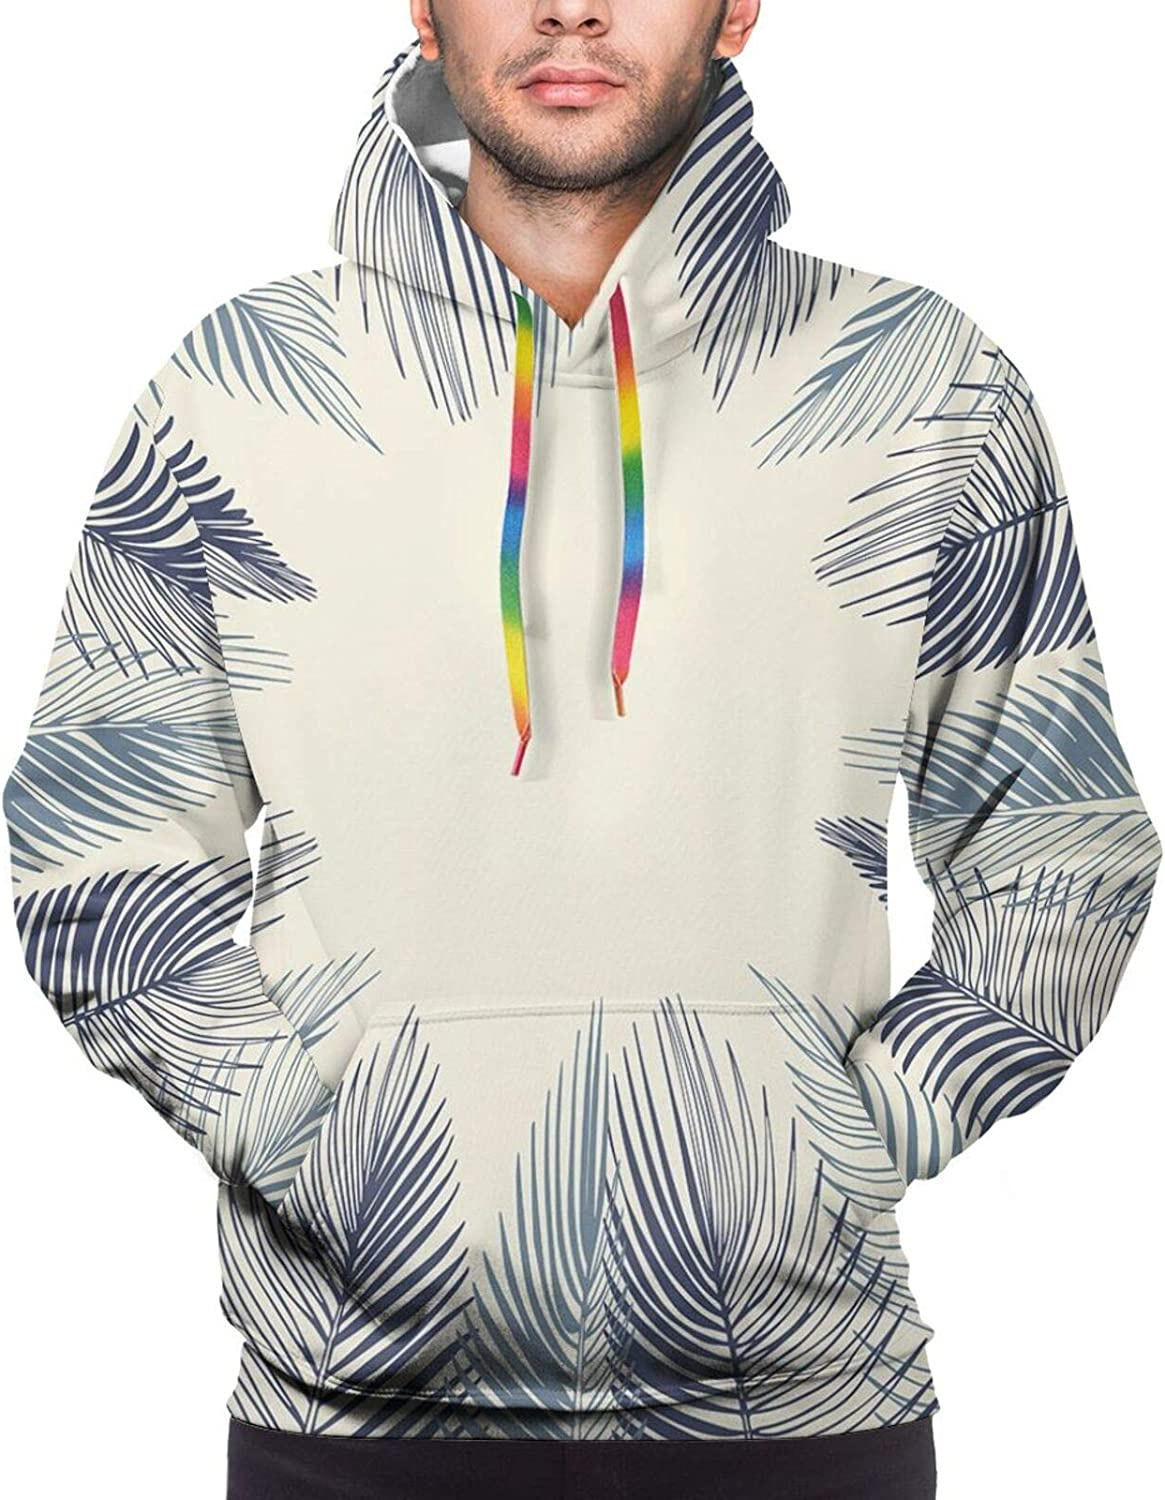 Men's Hoodies Sweatshirts,Hand Drawn Style Yellow Daisies Like Flowers with Black Lines and Leaves Print